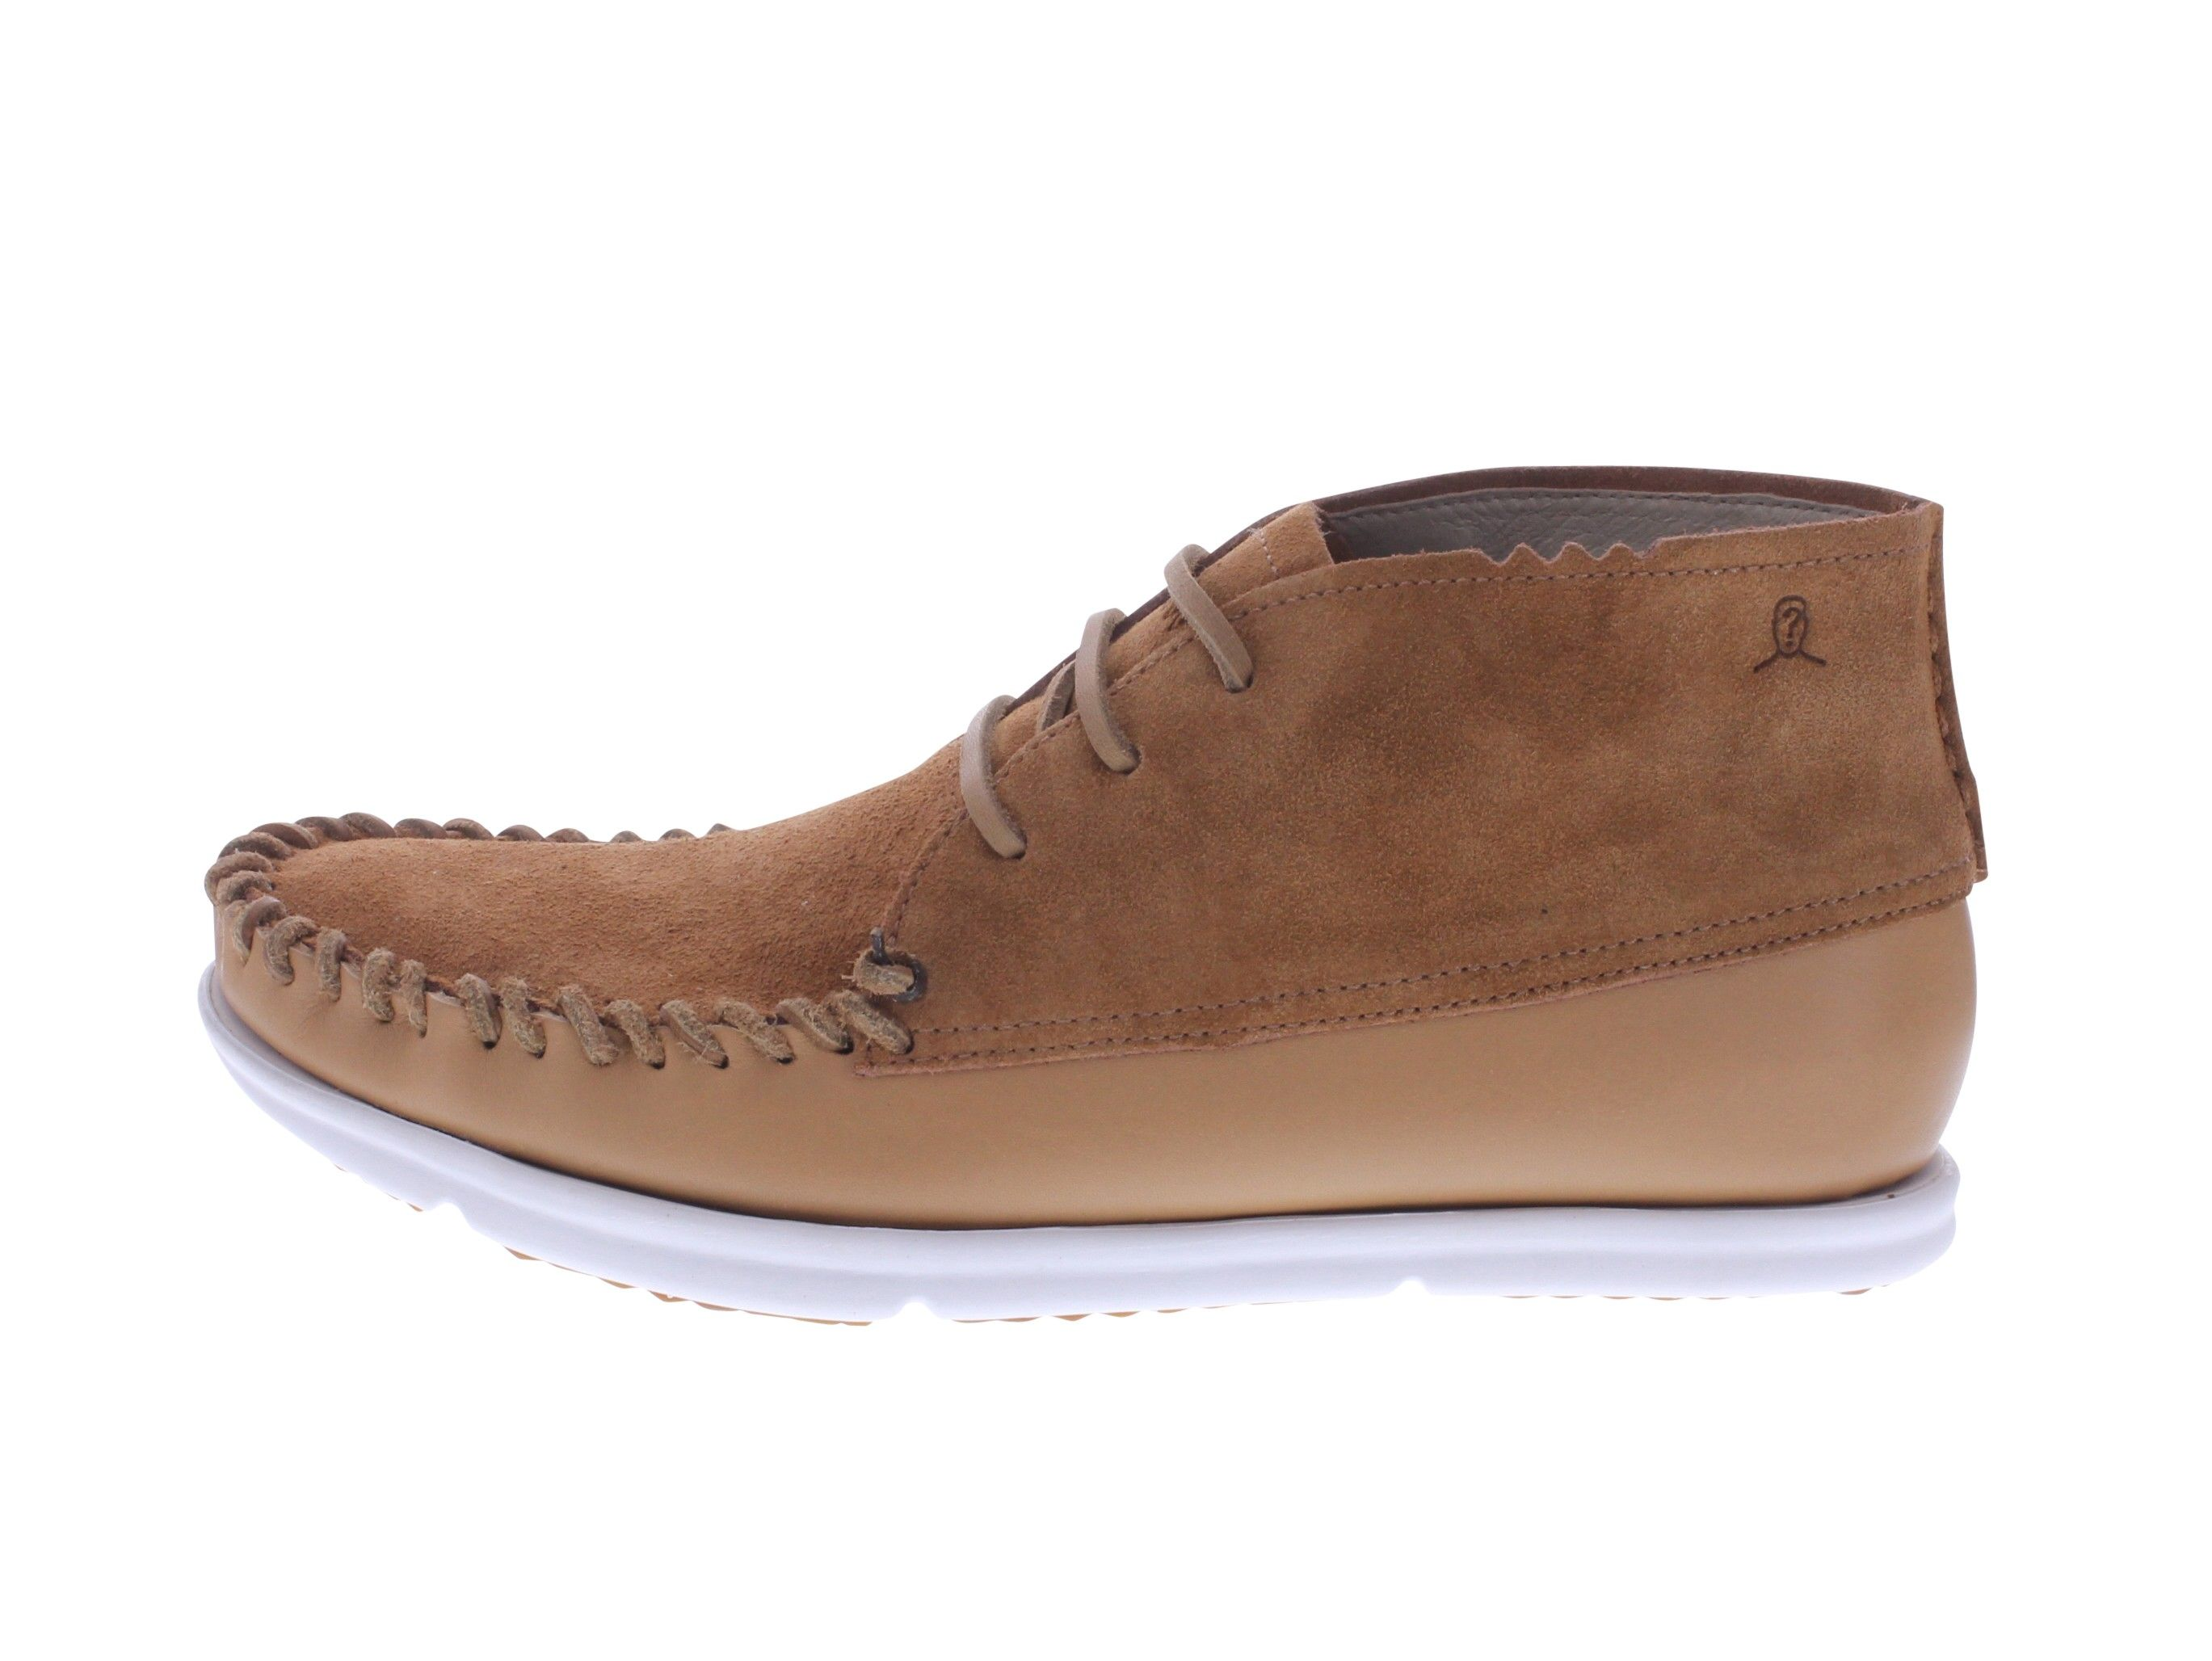 Three-eyelet moccasin shoe in full grain leather and suede.